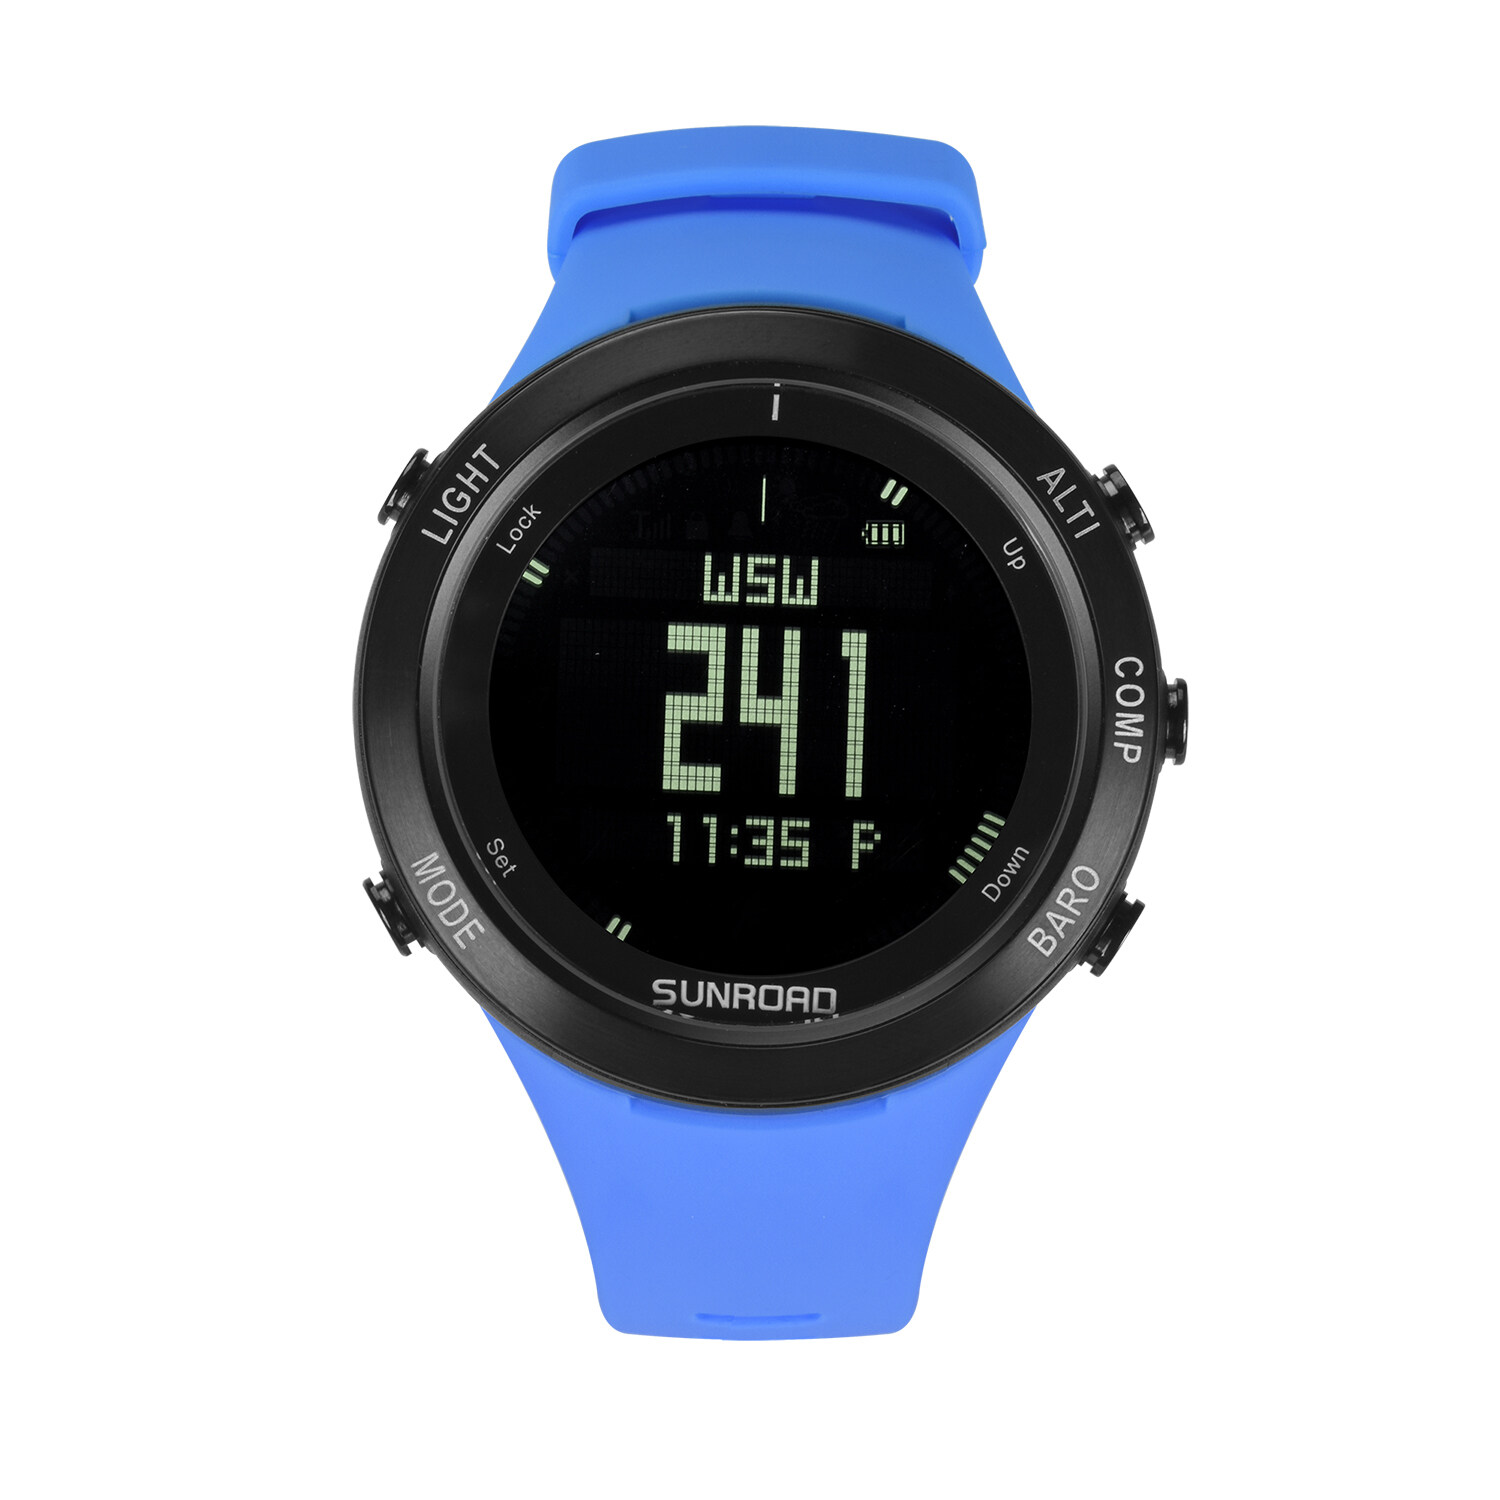 Sunroad heart rate outdoor sports watch with Pedometer, altimeter, climb data, hiking, camping, traveling watch waterproof 8